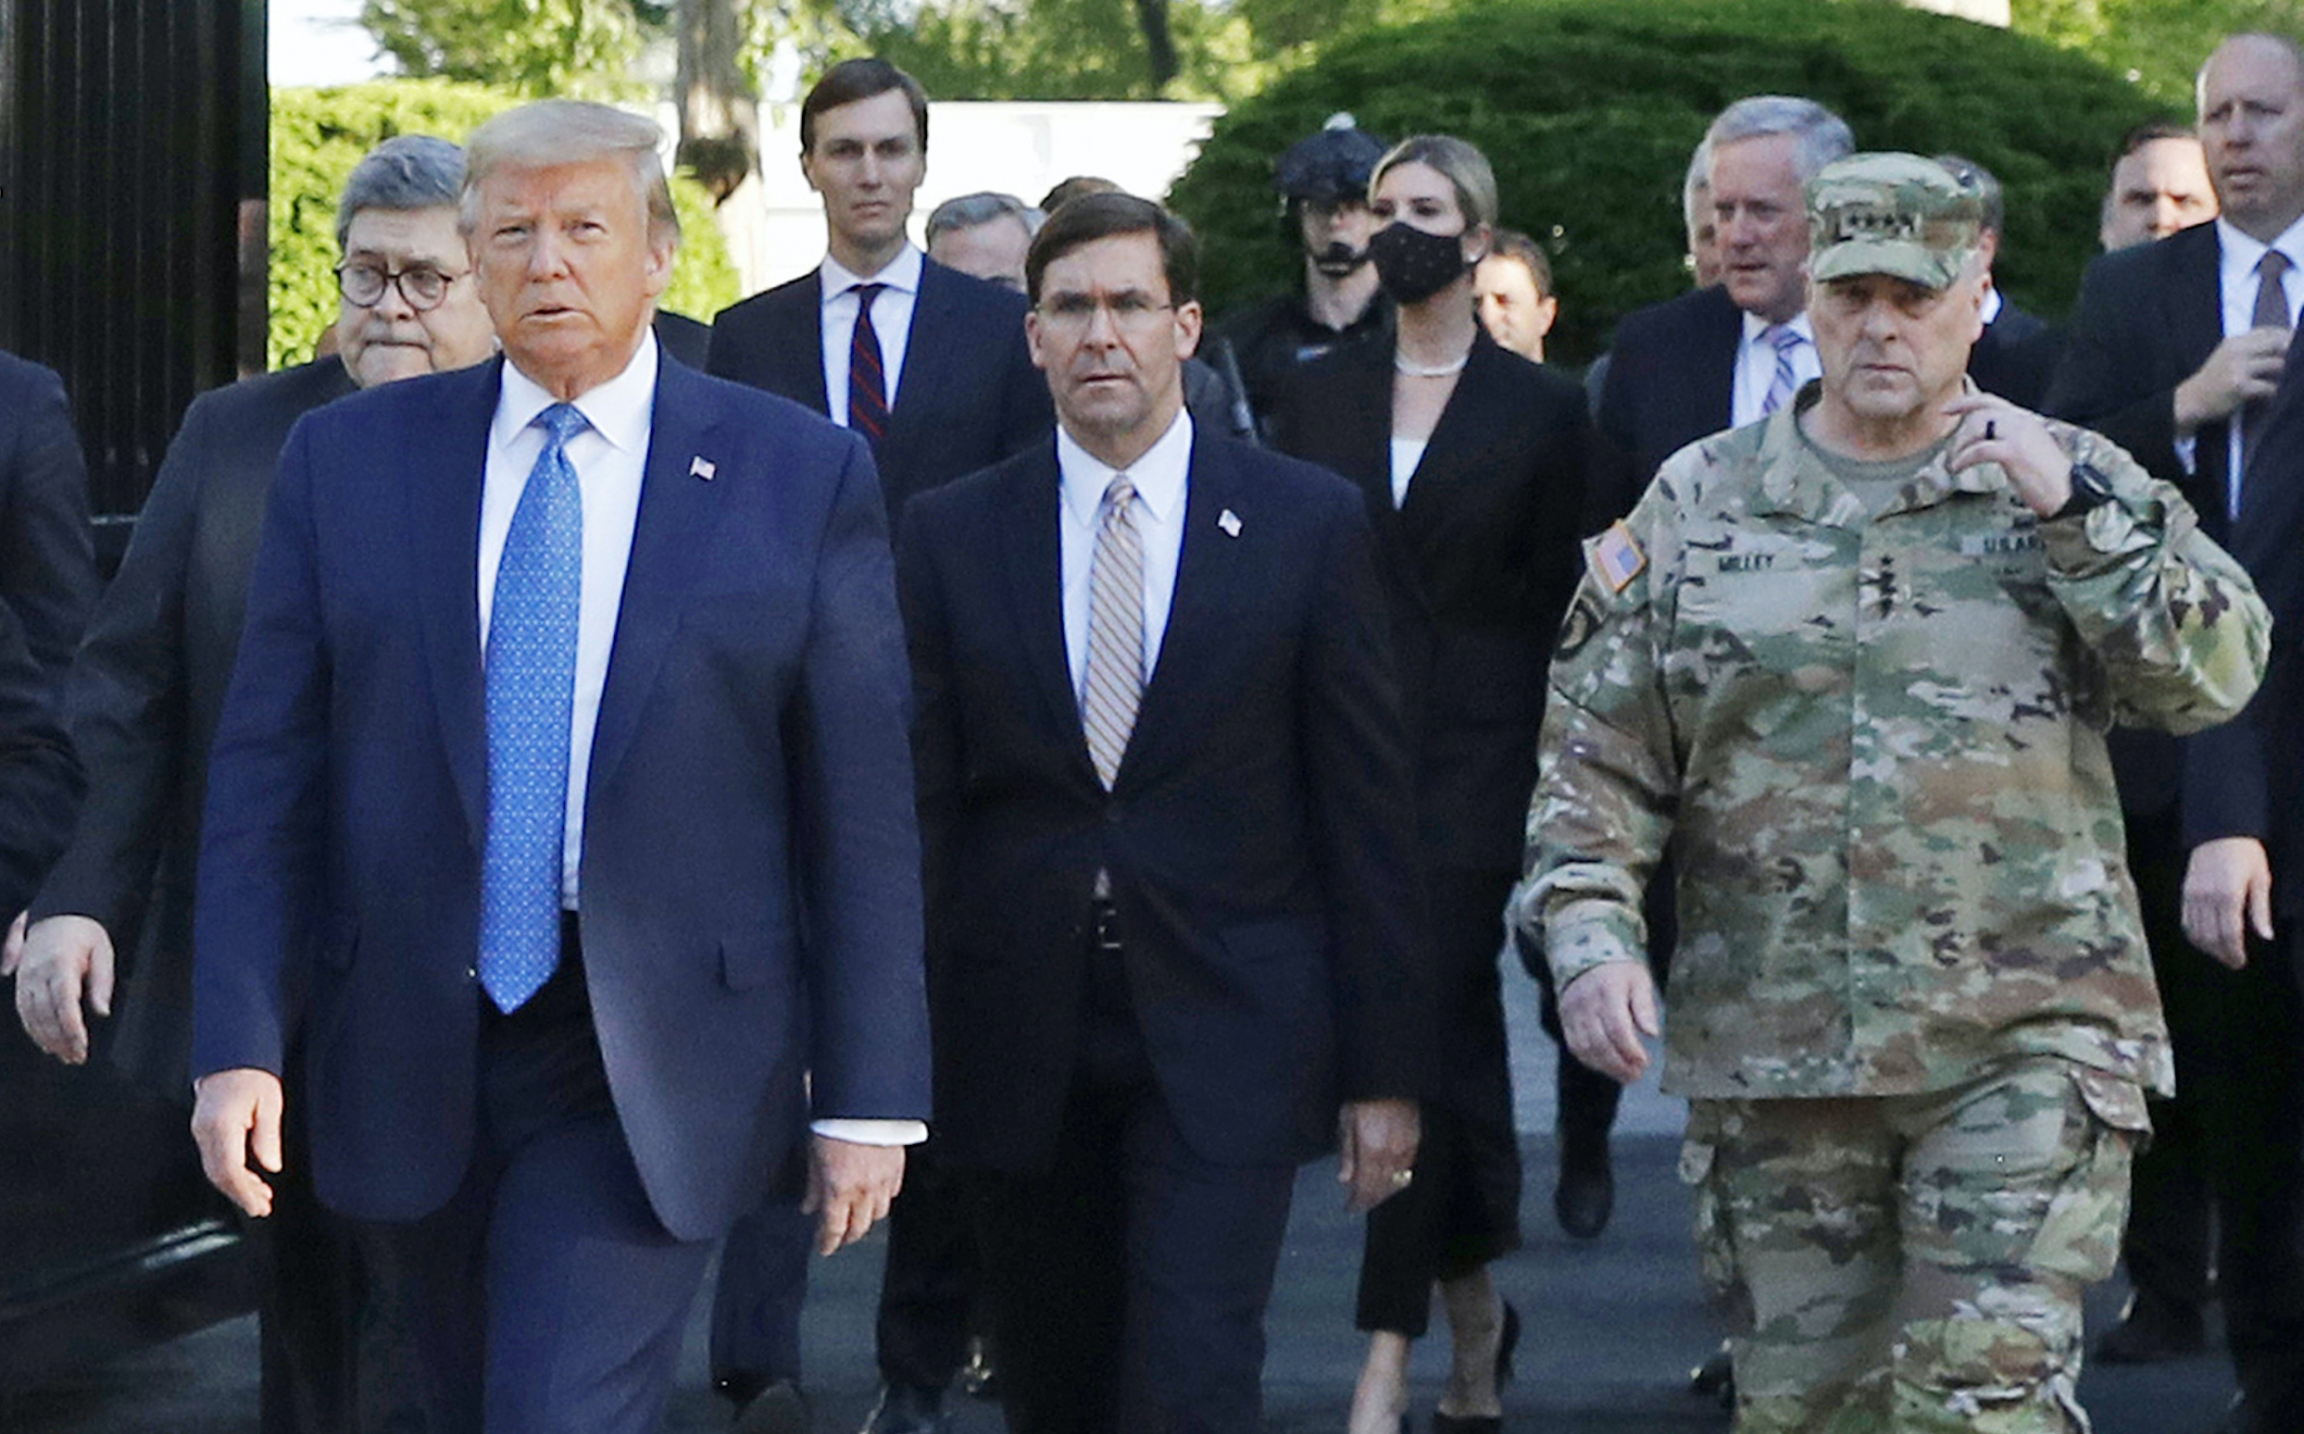 In this June 1 file photo, President Donald Trump departs the White House to visit outside St. John's Church. Walking behind Trump, at right, is Gen. Mark Milley, chairman of the Joint Chiefs of Staff.